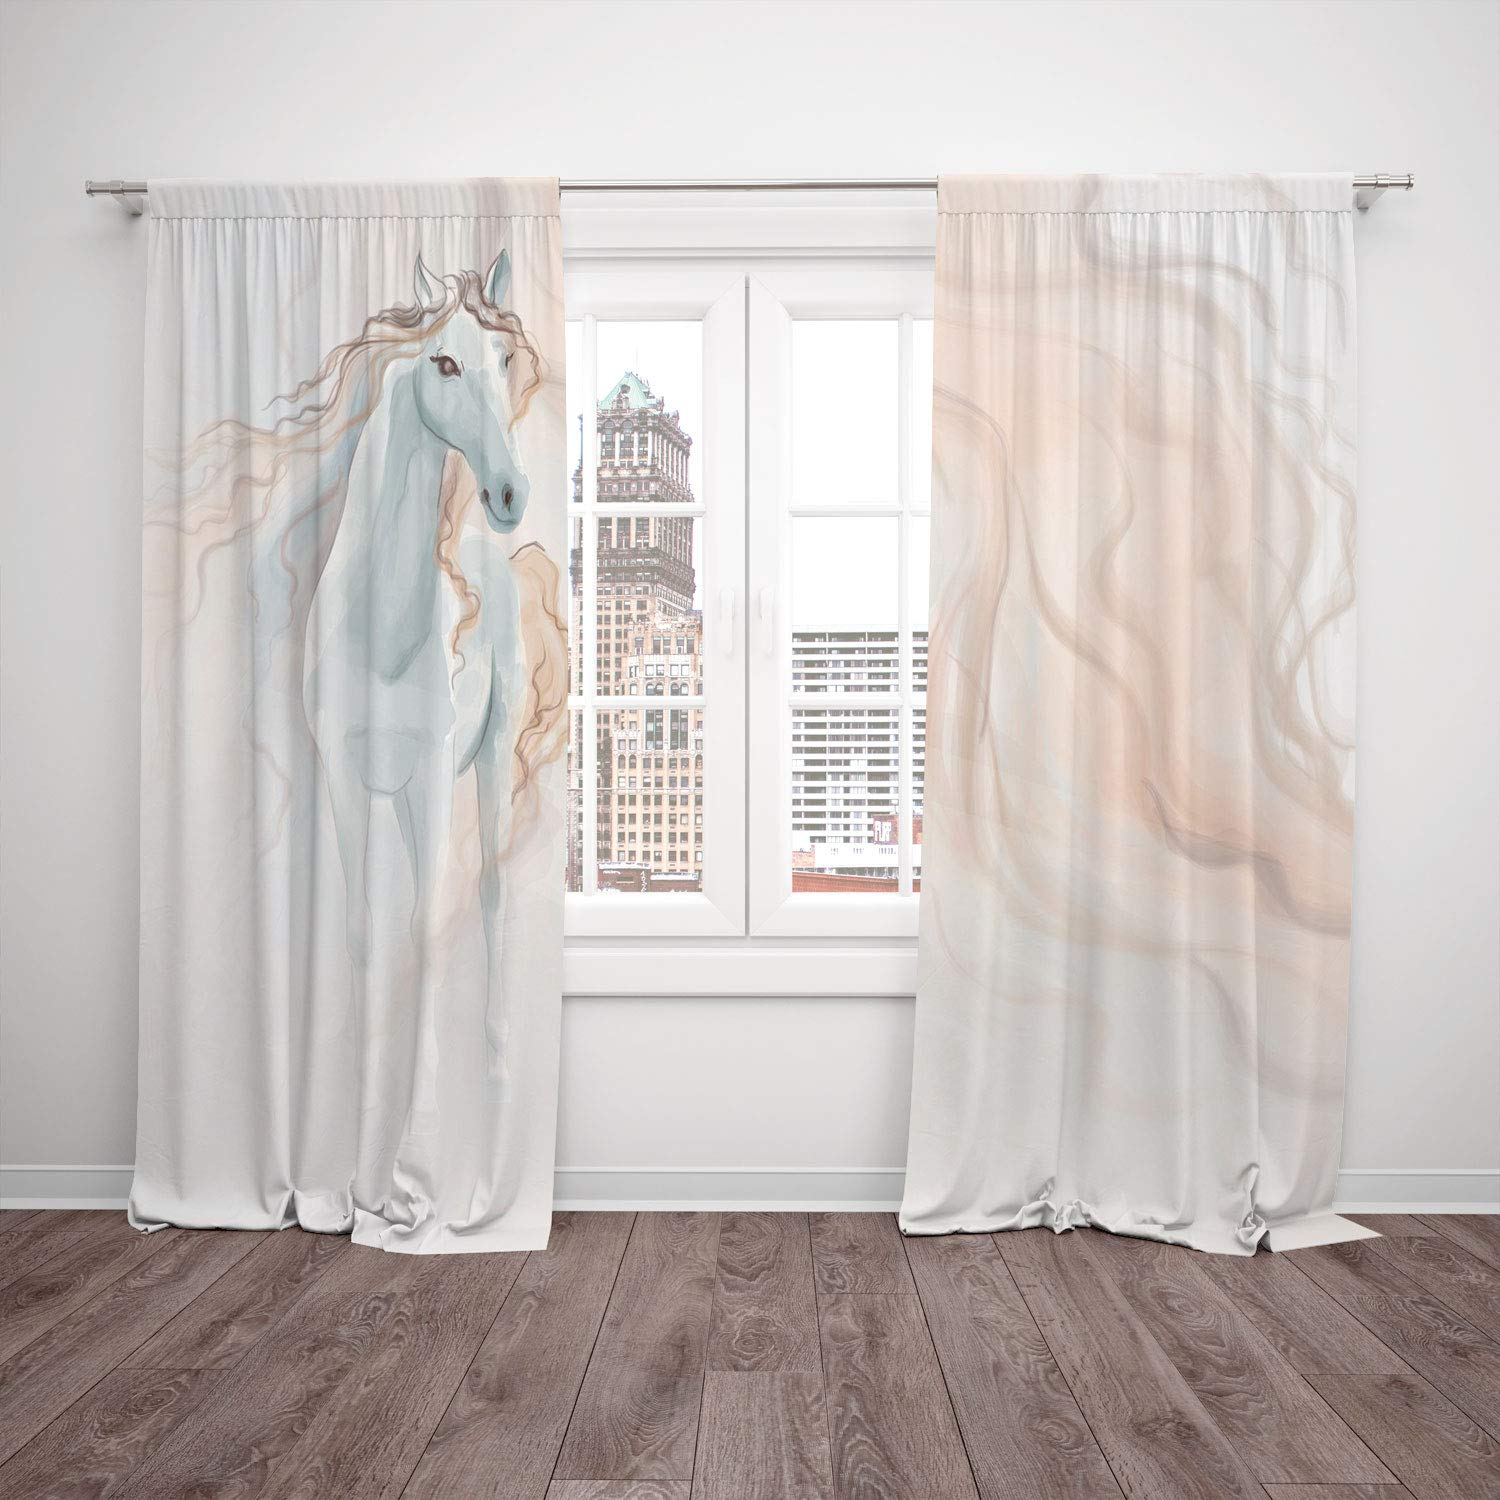 Thermal Insulated Blackout Window Curtain,Horse Decor,Watercolor Painting of a Fantasy Horse Dreamlike Abstract Wavy Lines Decorative,White Light Brown,Living Room Bedroom Kitchen Cafe Window Drapes 2